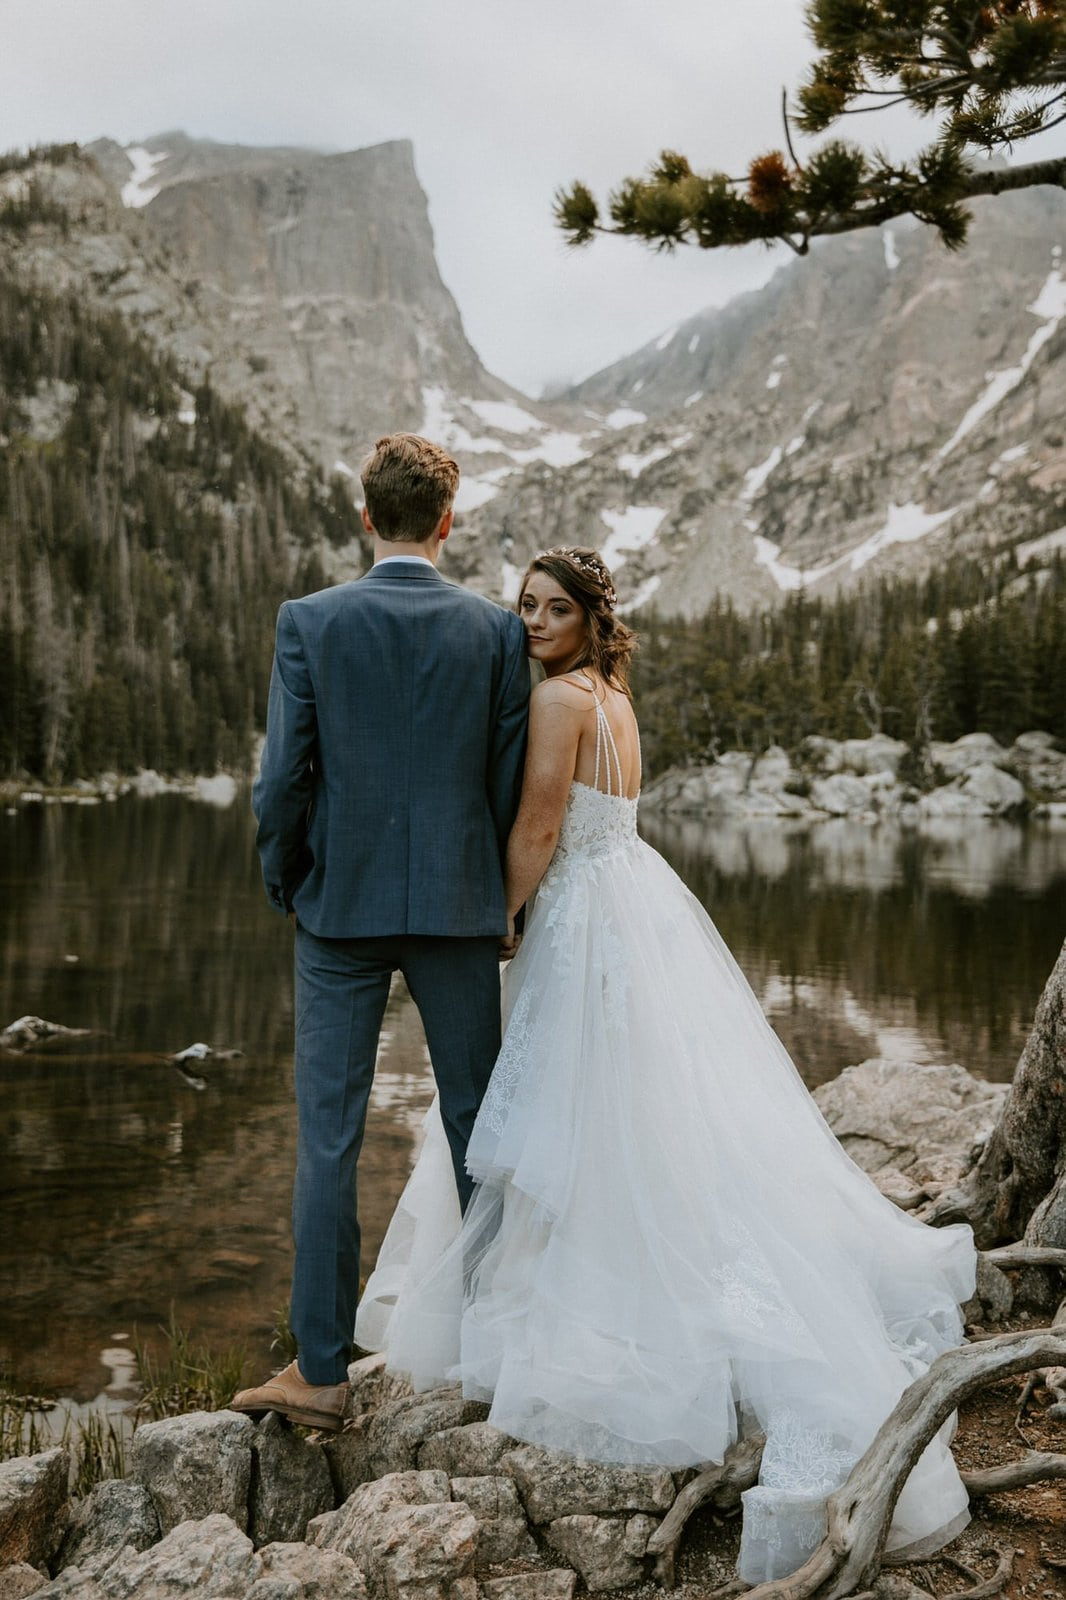 Intimate wedding at Rocky Mountain National Park